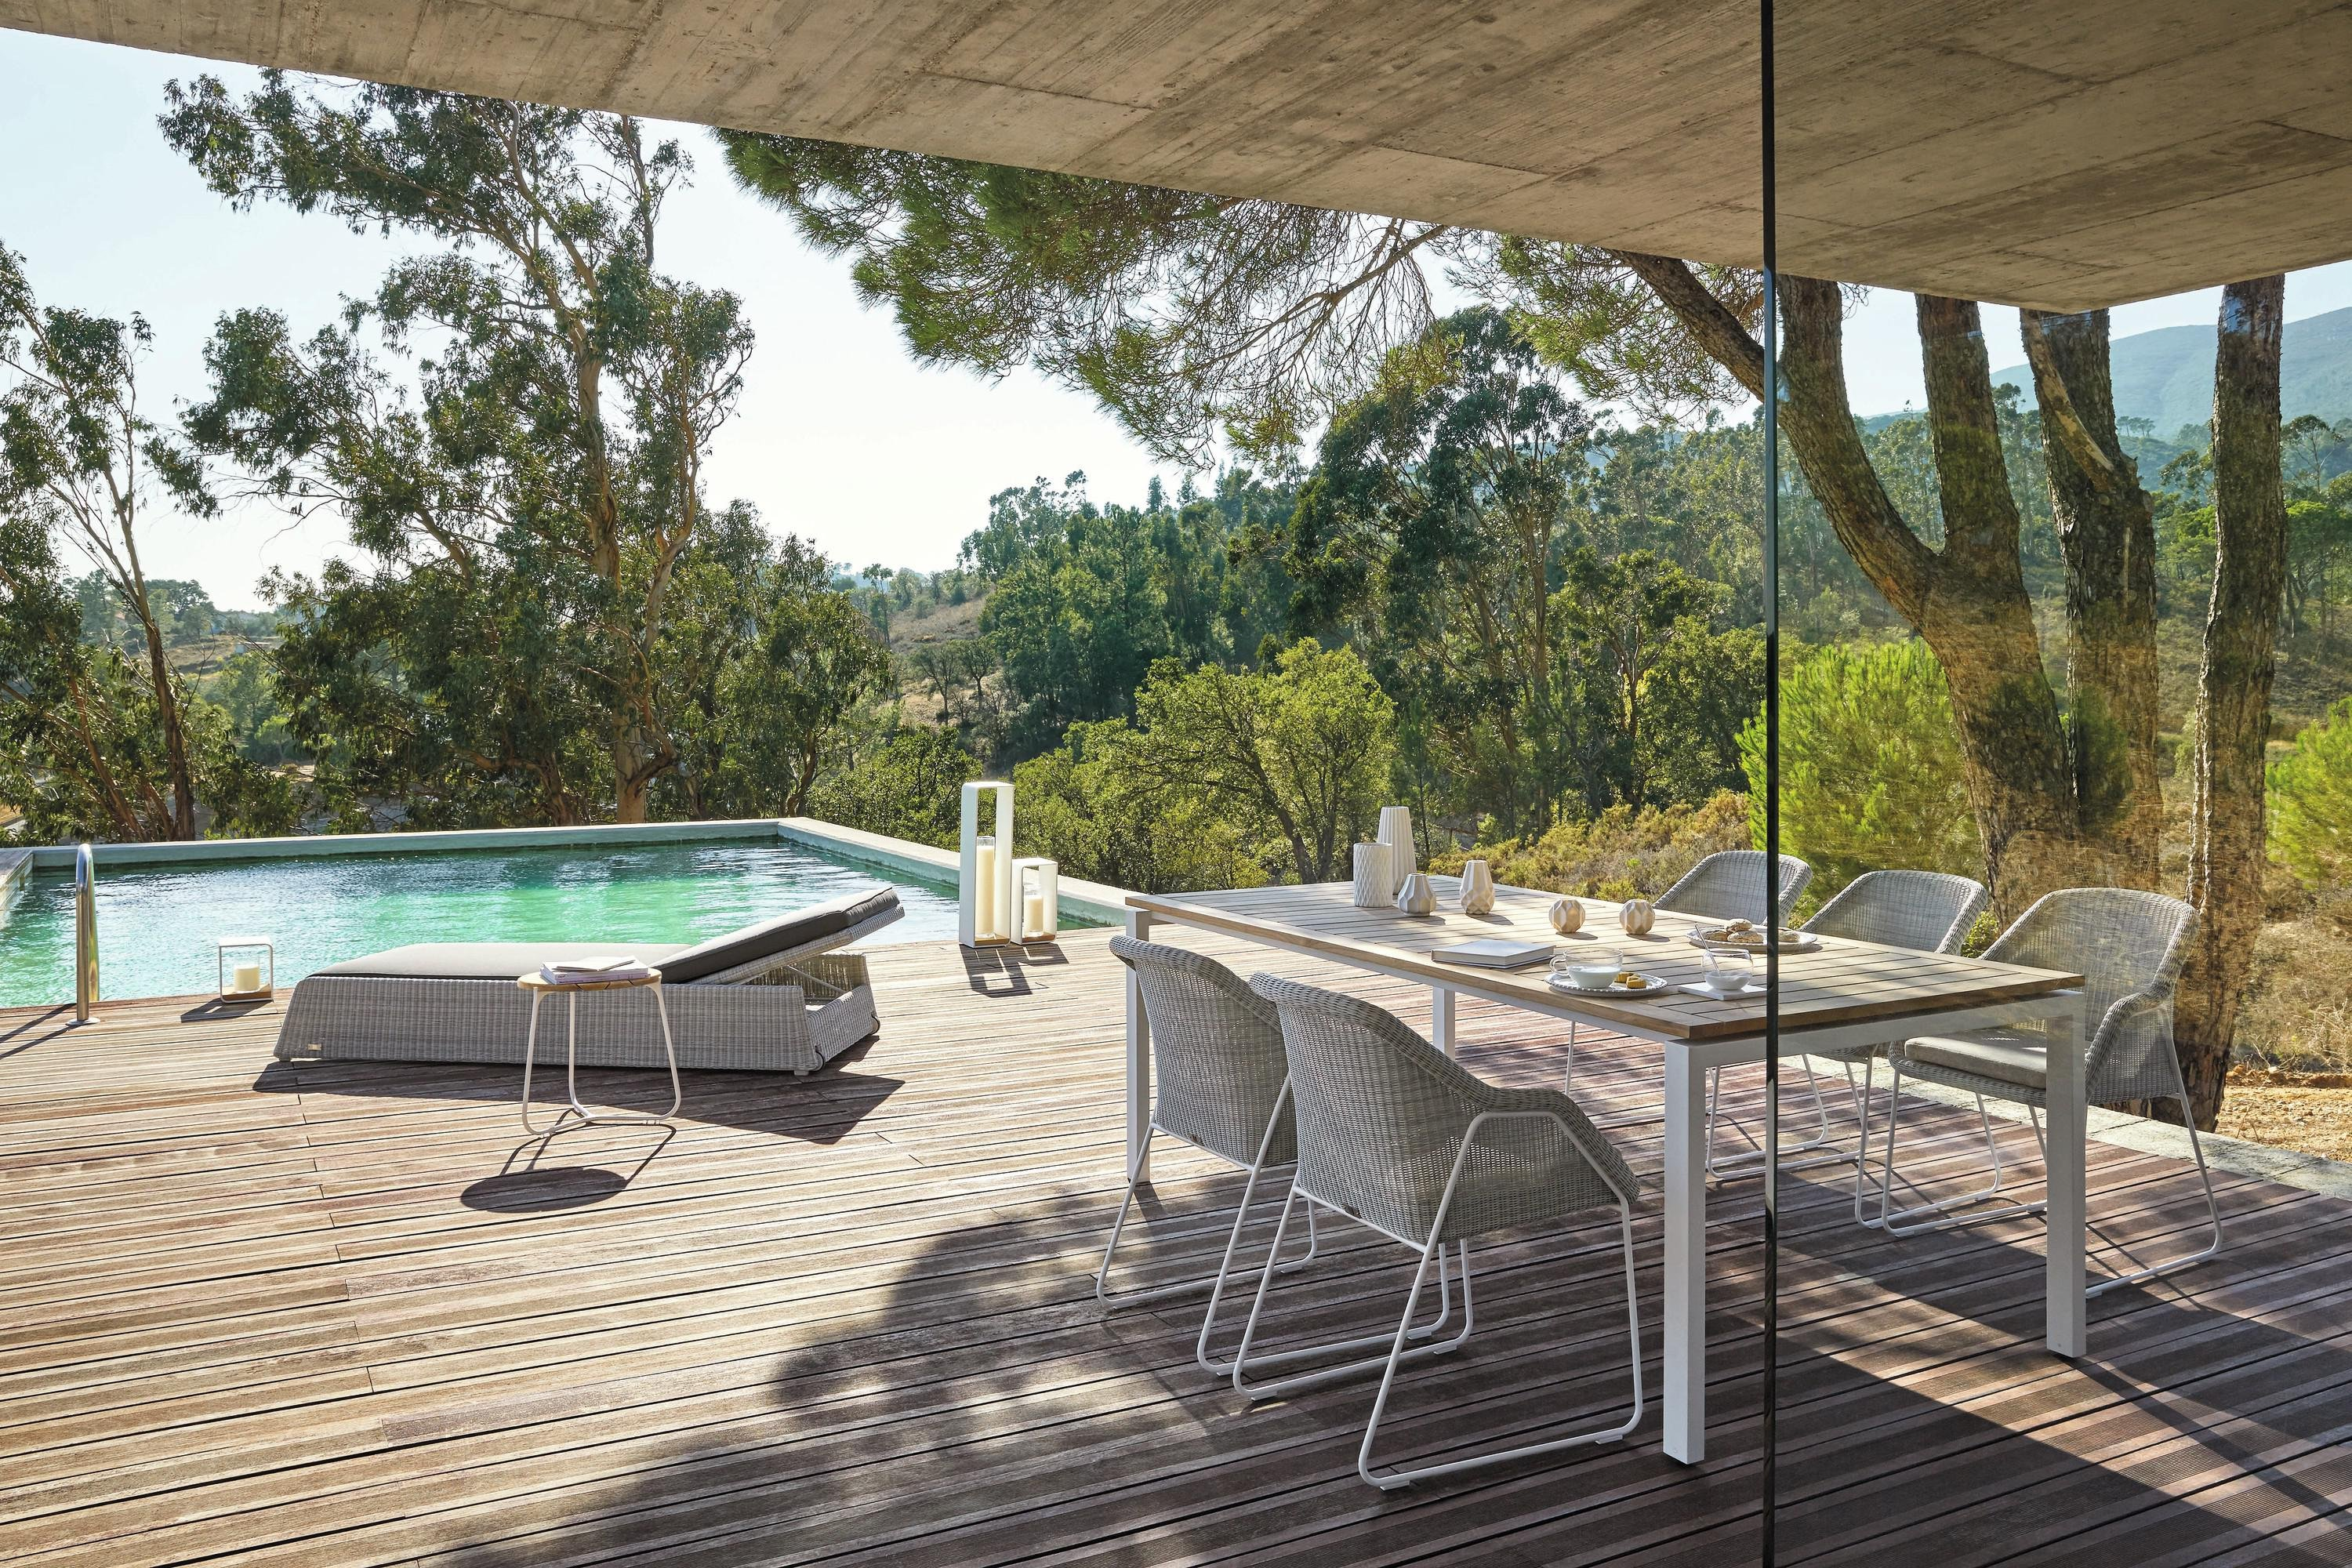 Trento Dining Table from Manutti, designed by Stephane De Winter